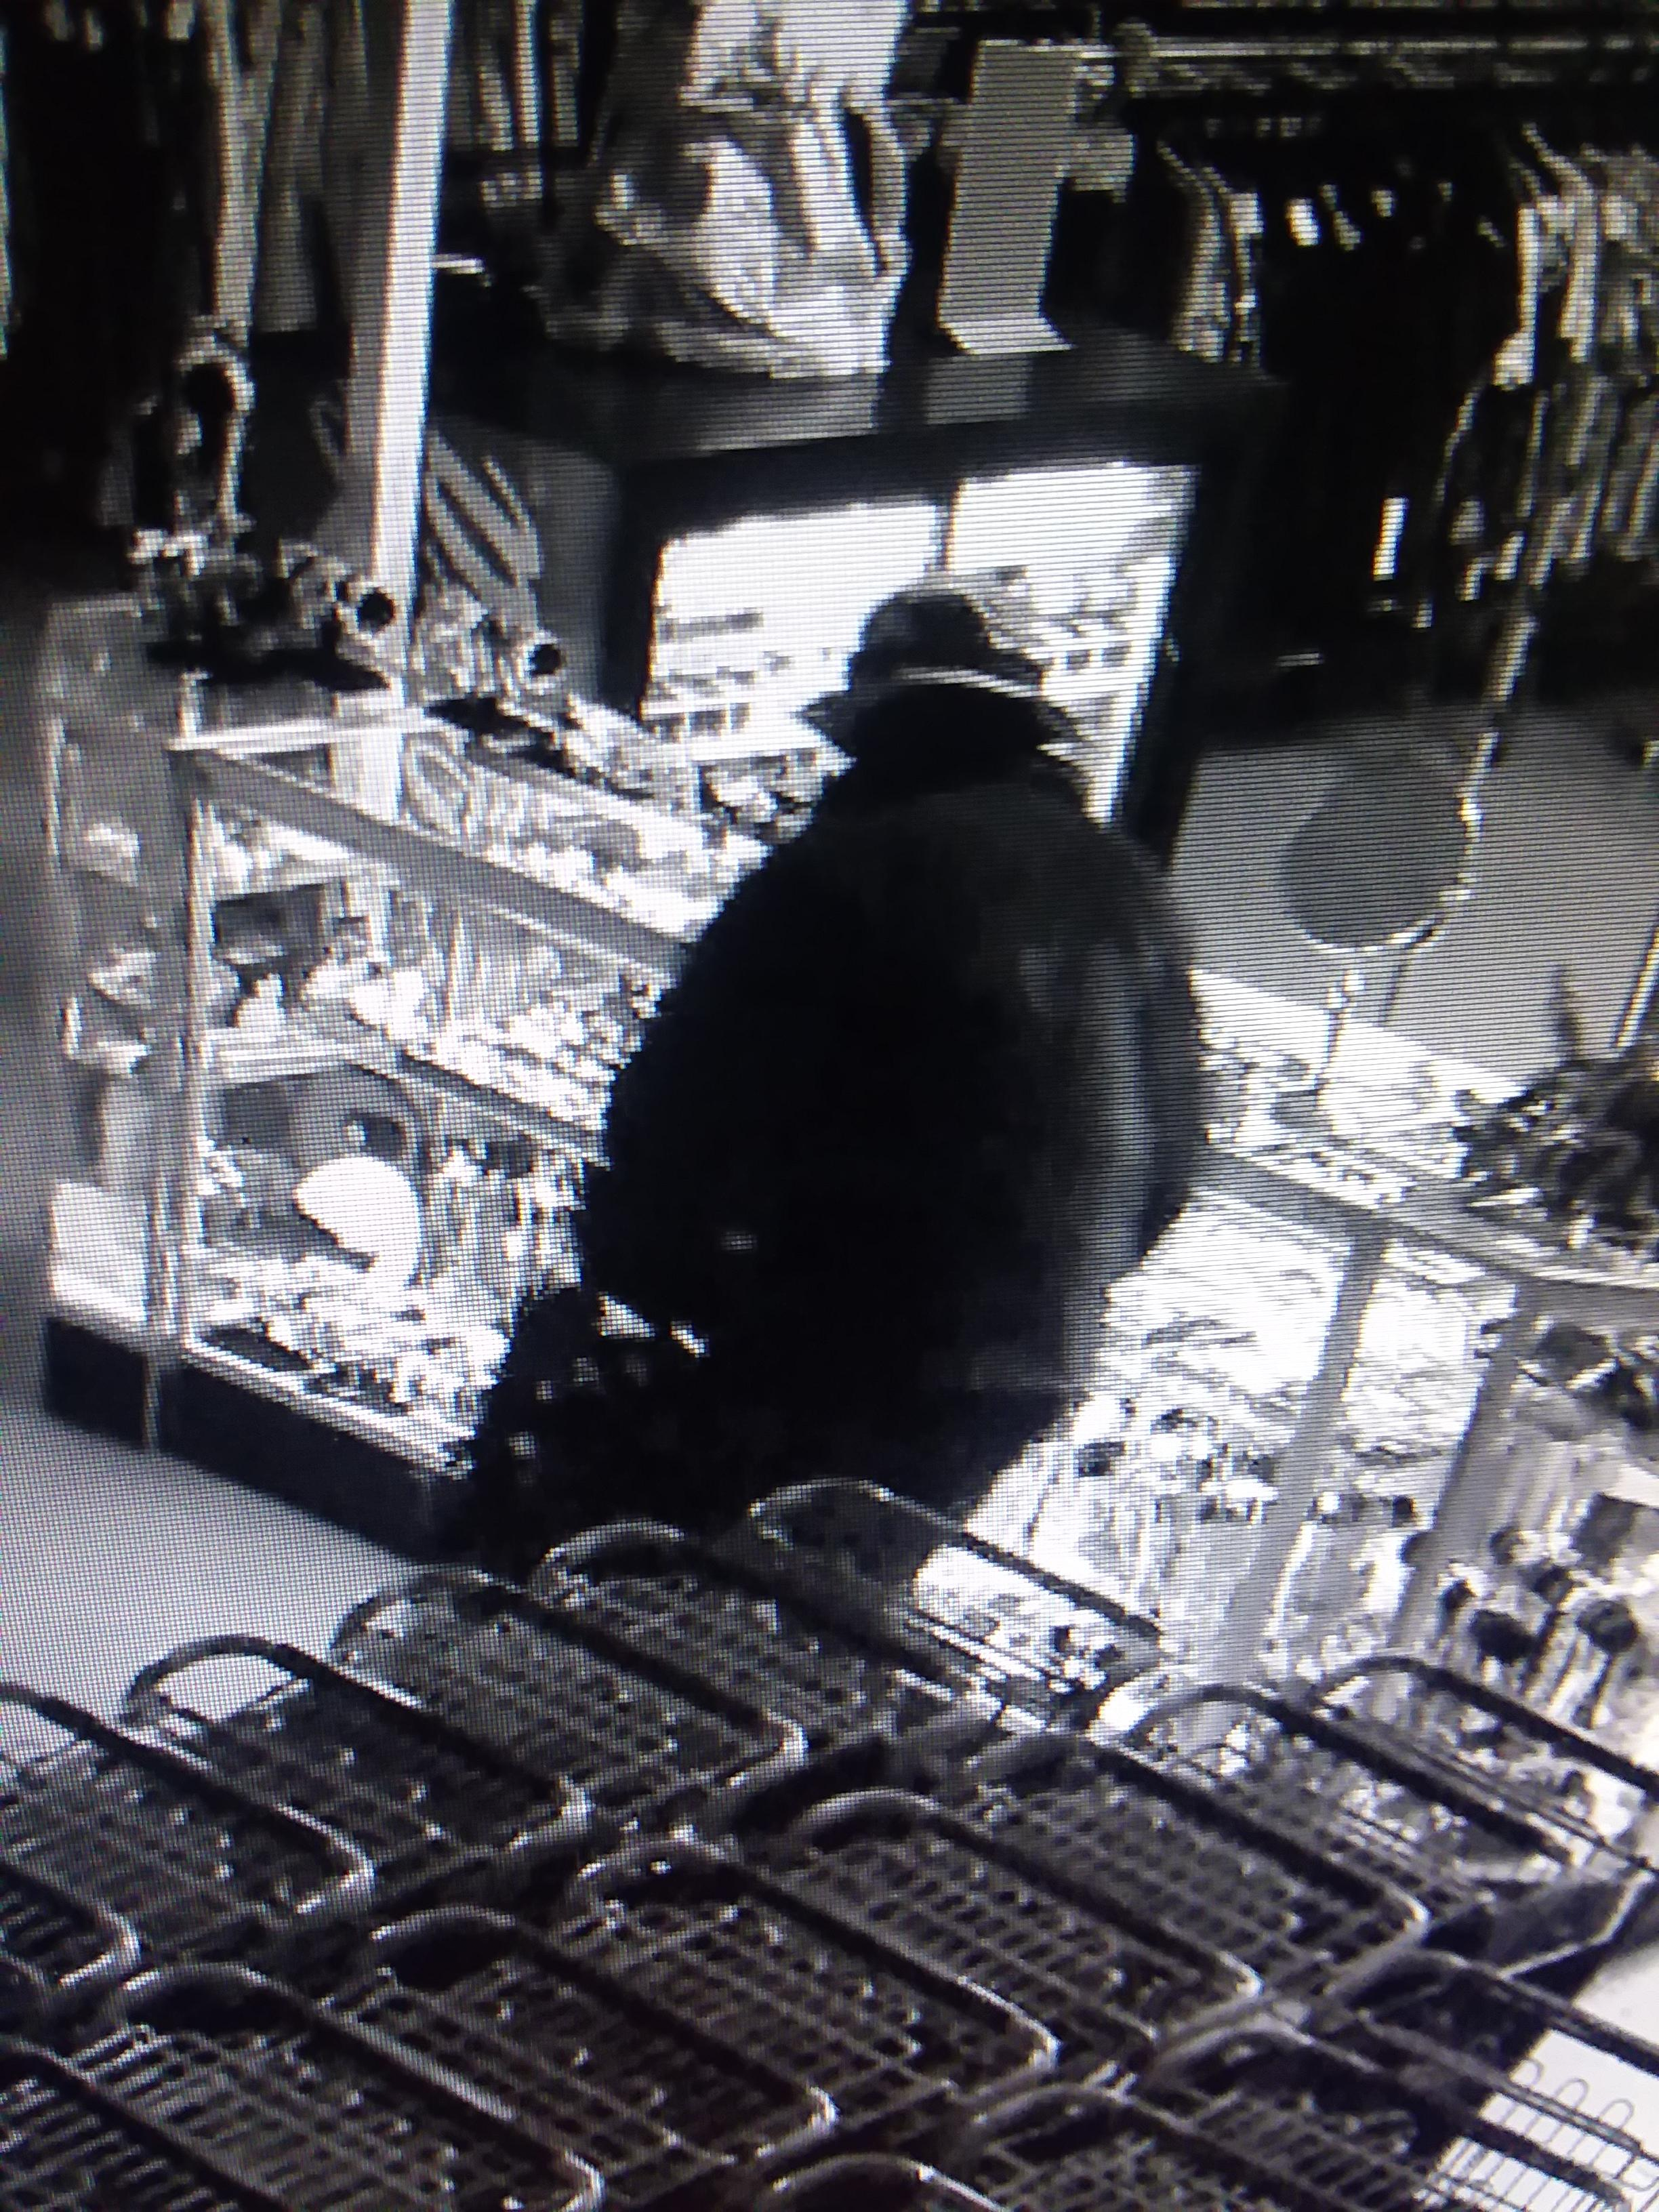 Goodwill has offered a $10,000 reward after someone broke into a Eugene retail store early Wednesday morning. (From store surveillance camera)